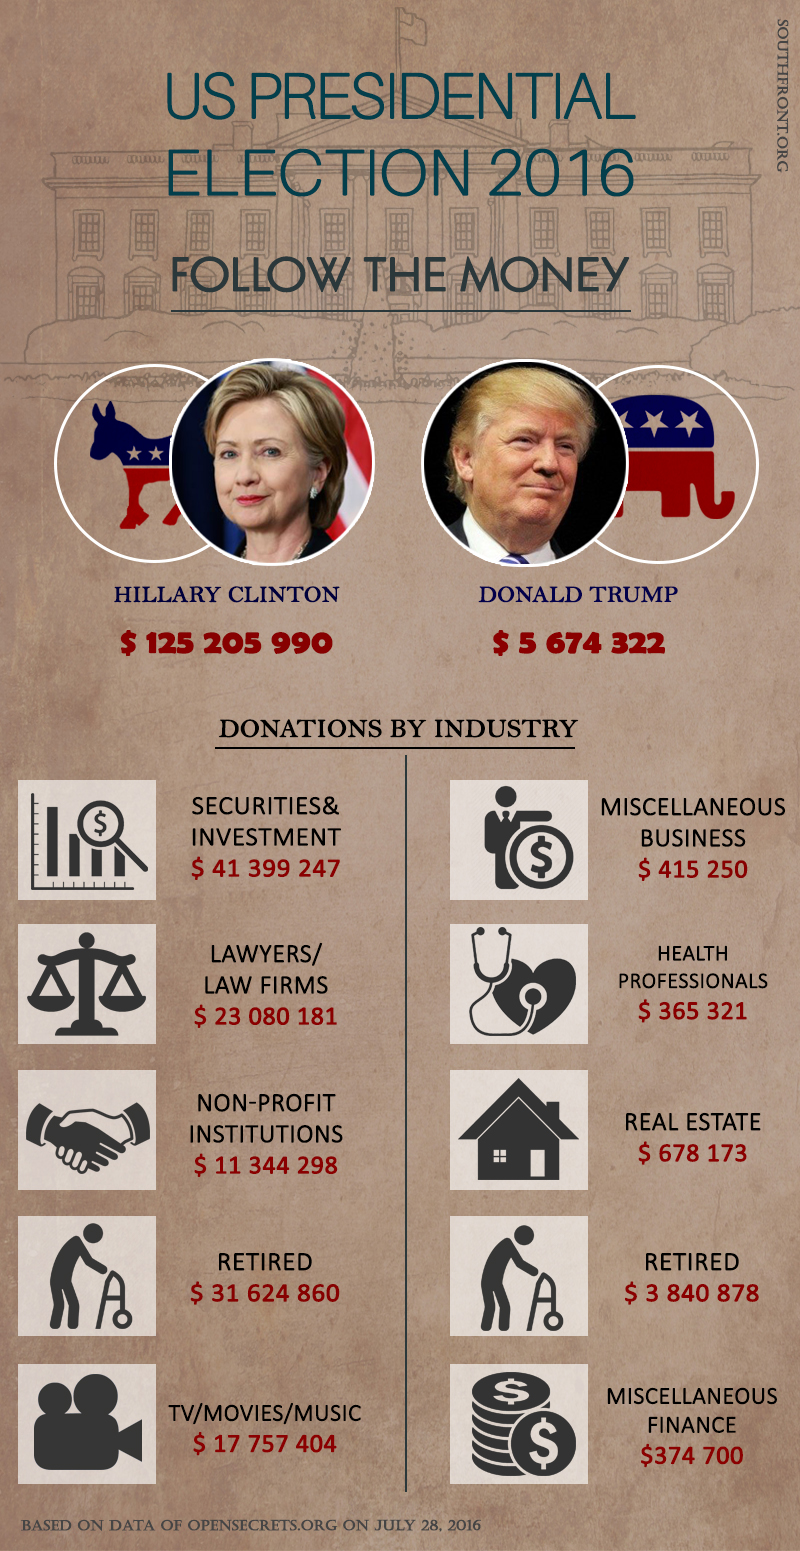 Follow the Money: What Industries Support US Presidential Candidates?